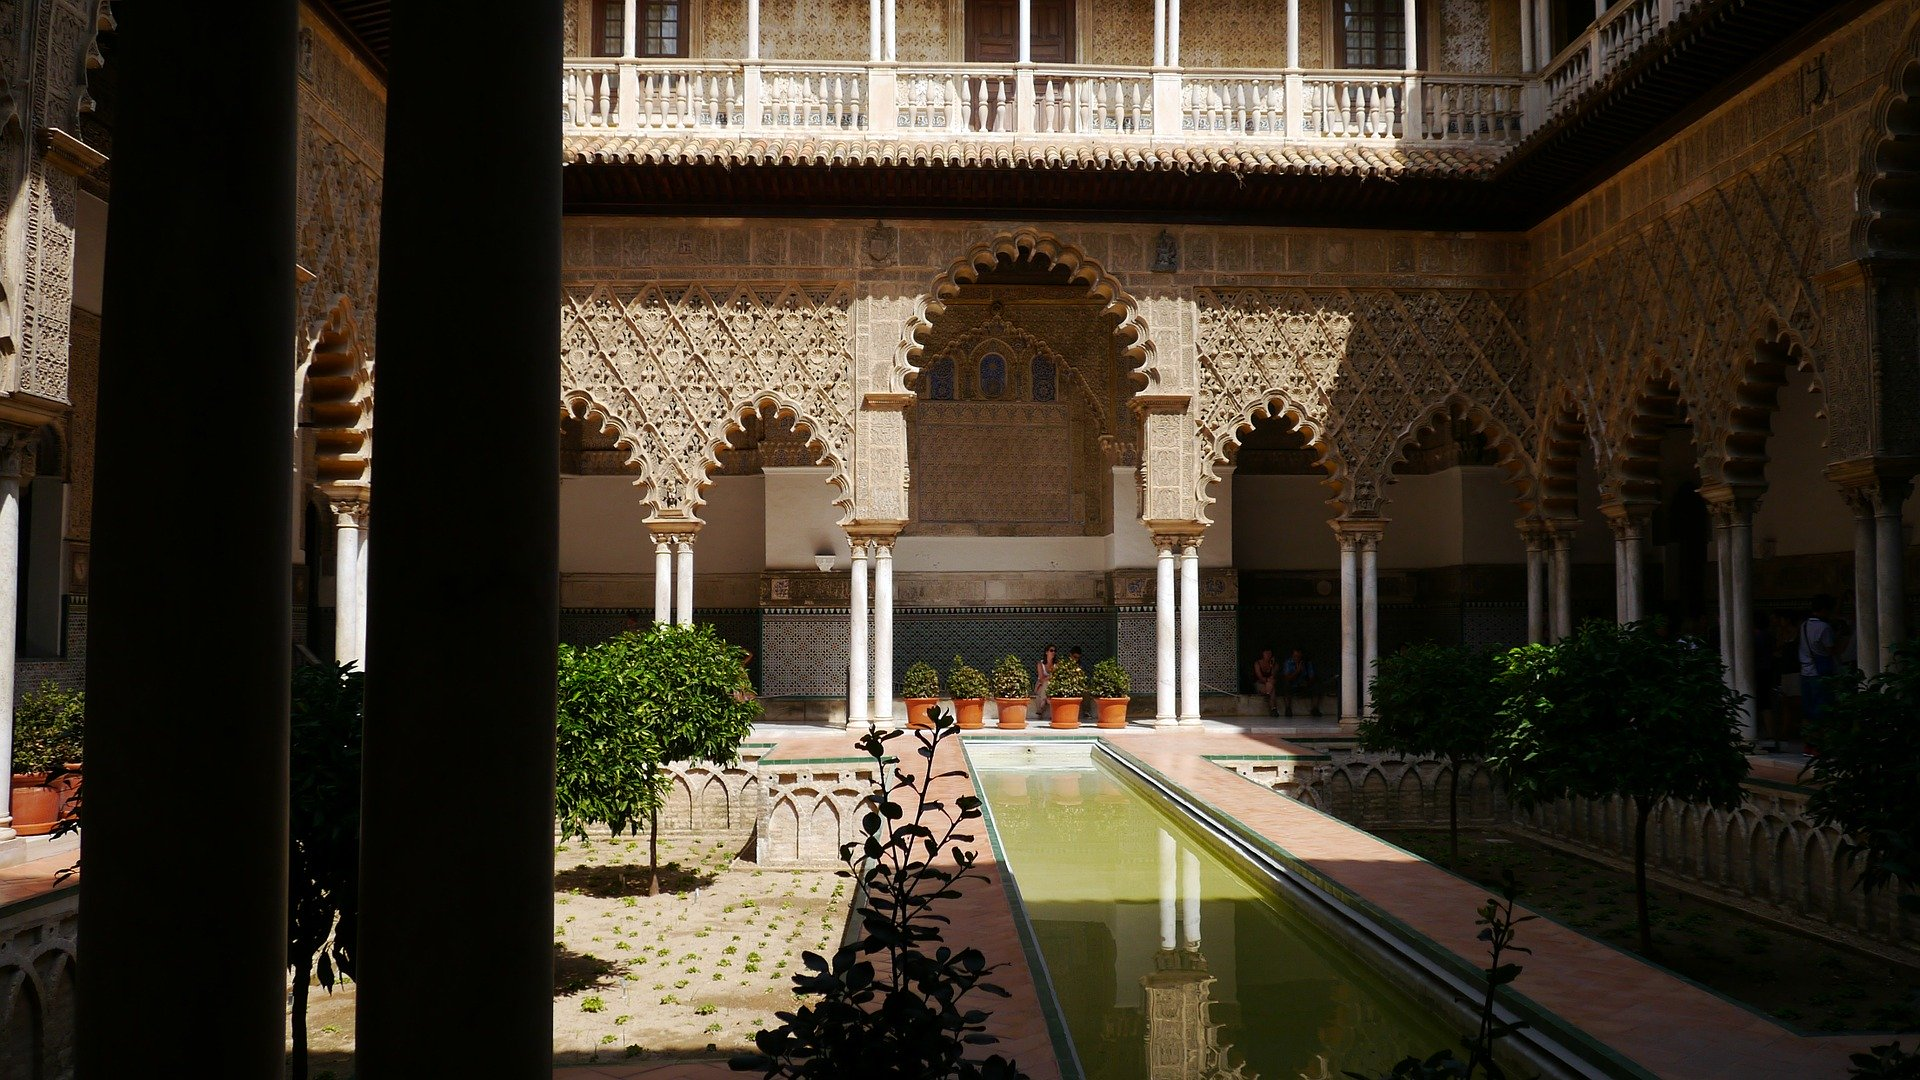 A landscape photo taken from with the Alcazar Palace looking onto the patio